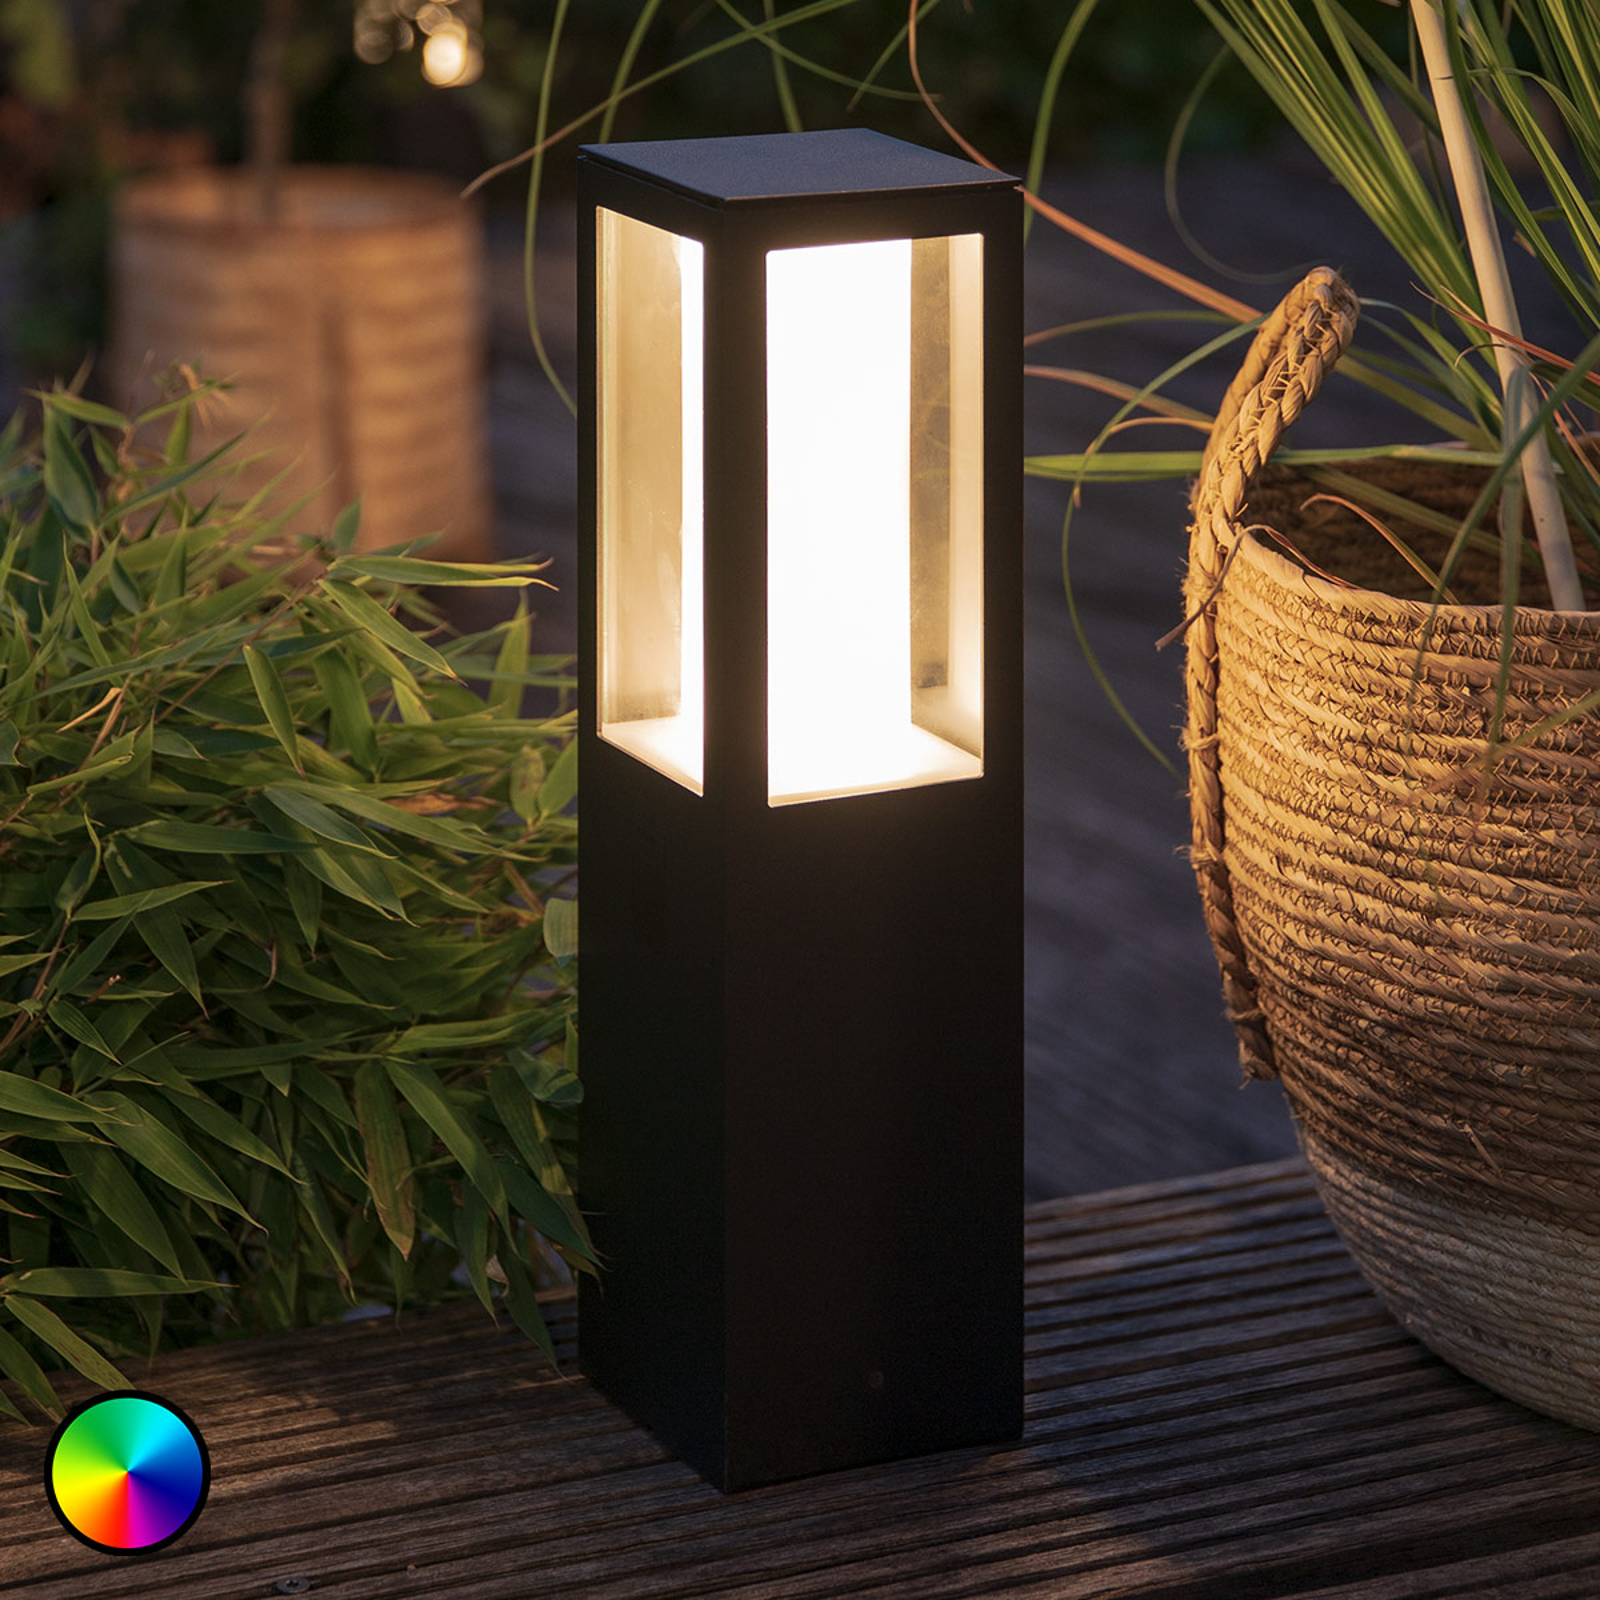 Philips Hue Impress lampioncino, set di base